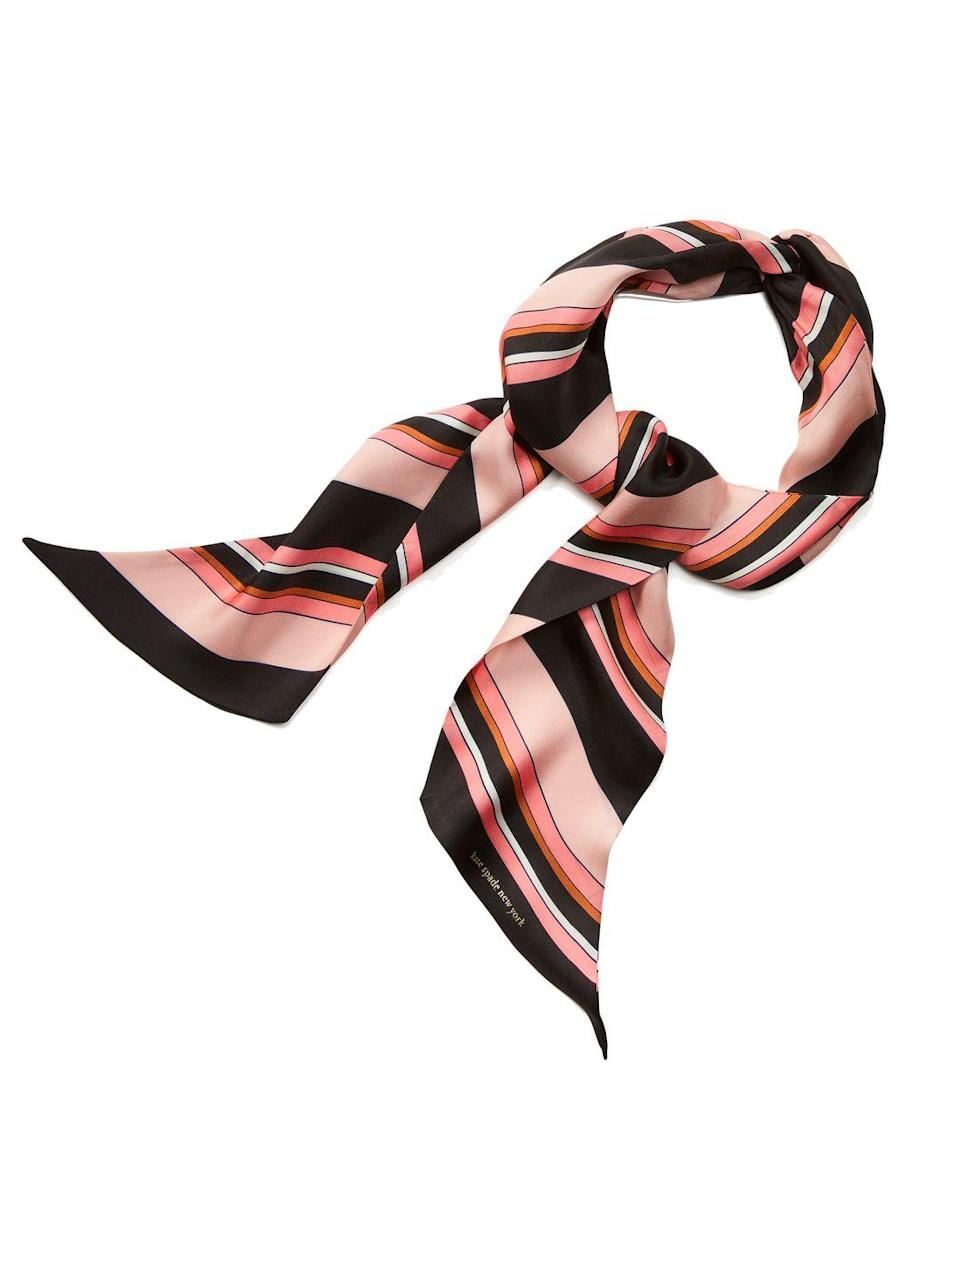 """<p>Kate Spade silk head scarf – £55.00</p><p><a class=""""link rapid-noclick-resp"""" href=""""https://go.redirectingat.com?id=127X1599956&url=https%3A%2F%2Fwww.katespade.co.uk%2Fen-gb%2Faccessories%2Faquatic-stripe-twisted-head-scarf%2FKS1002995.html%3Fdwcolor%3DBLACK%26dwsize%3D484_ONE&sref=https%3A%2F%2Fwww.elle.com%2Fuk%2Ffashion%2Fwhat-to-wear%2Farticles%2Fg31862%2Fthe-10-items-you-need-in-your-capsule-holiday-wardrobe%2F"""" rel=""""nofollow noopener"""" target=""""_blank"""" data-ylk=""""slk:SHOP NOW"""">SHOP NOW</a></p><p>While wide-brimmed straw hats might look louche and elegant, but they're also really impractical when it comes to packing (your favourite Jacquemus will no doubt emerge shapeless once it's been squashed into the depths of your suitcase). For summer 2021 everyone's swapping their headgear for a bandana instead. Buy a silky scarf now in a bold print and you can style it in myriad ways: as a headband, neckerchief, bracelet, bag strap, bandeau top or a belt.</p>"""